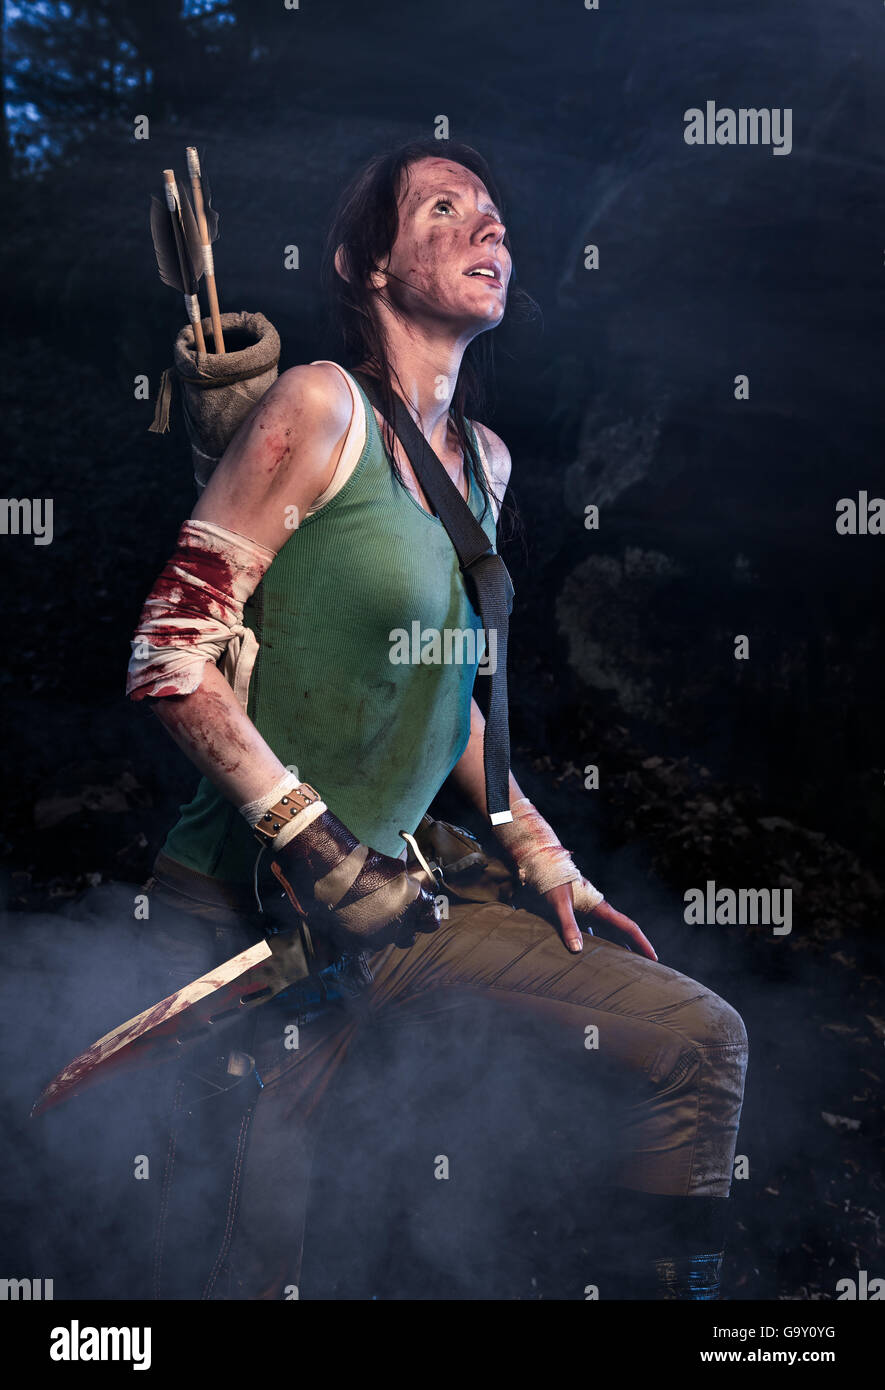 Rise of the Tomb Raider. Woman dressed up as Lara Croft stands next to the caves, holding a knife in the hand. - Stock Image